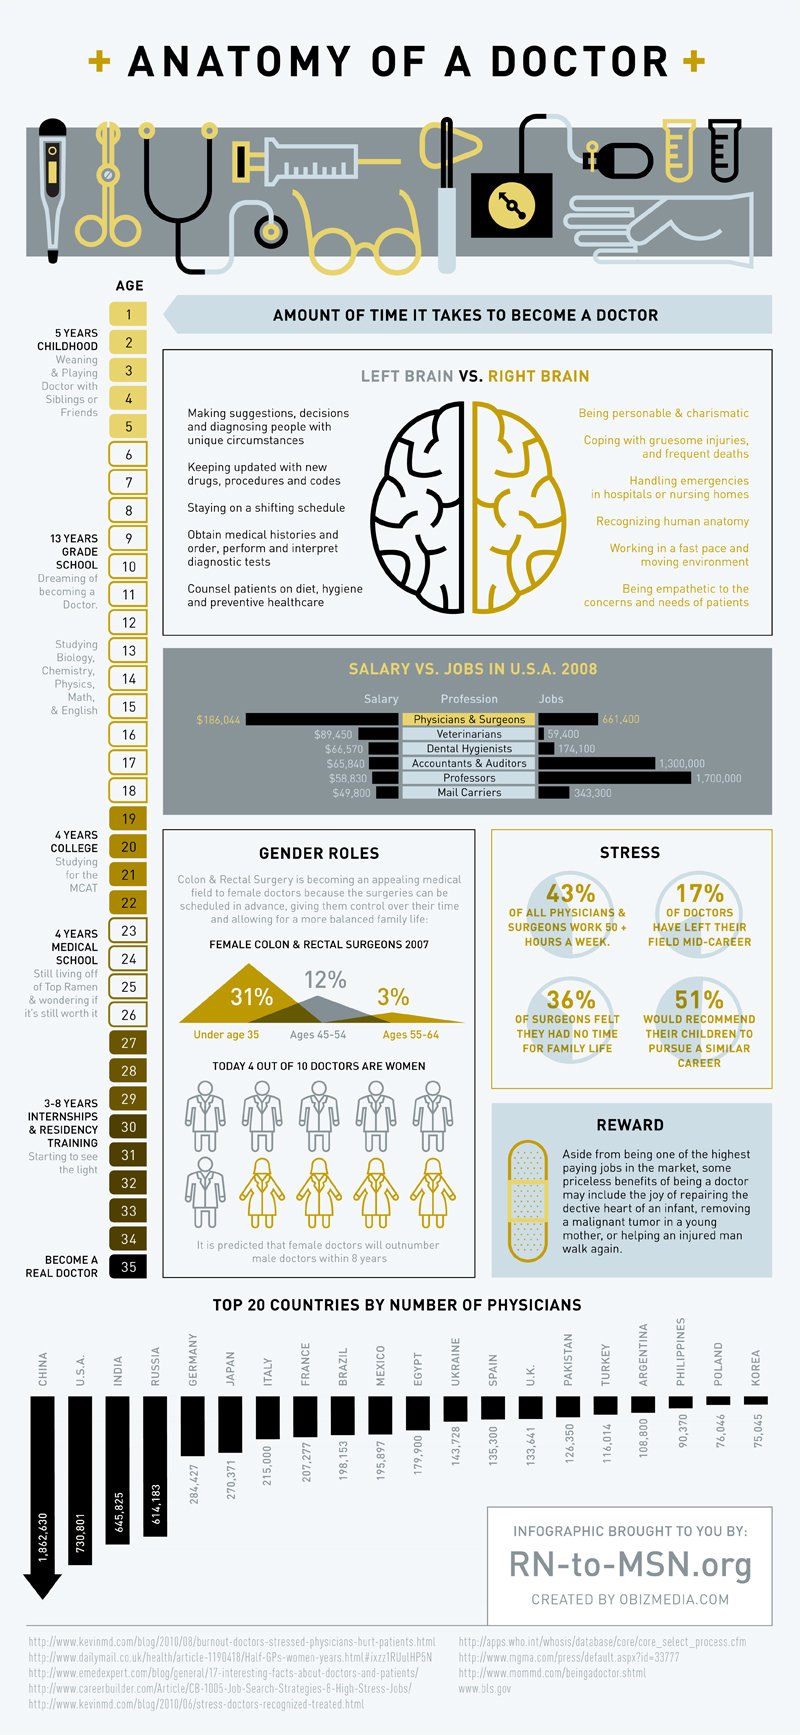 Anatomy of a Doctor #infographic